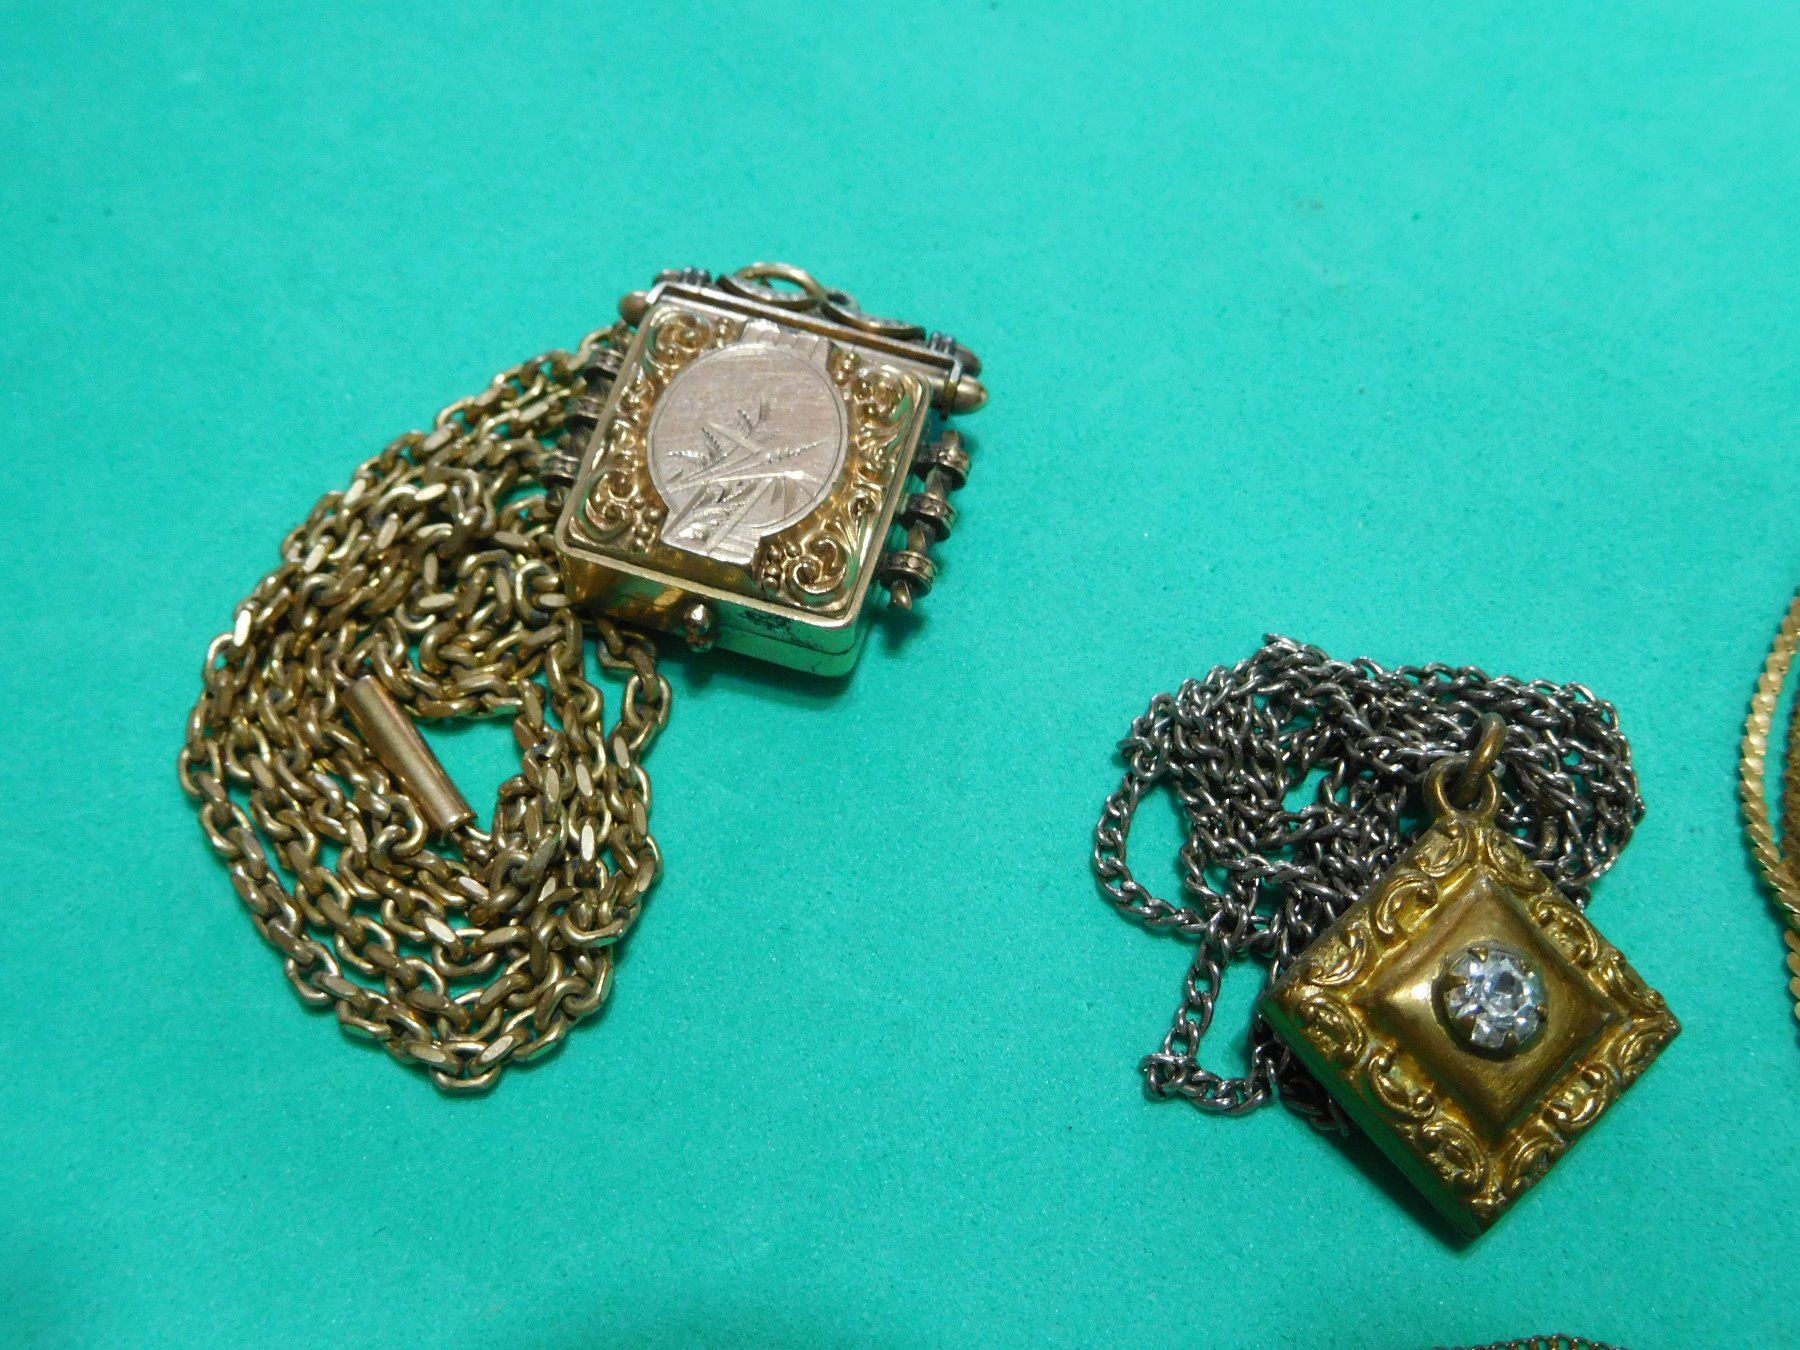 schmuckwerk de grosses square silber shop lockets p extra mattiert large medaillon silver